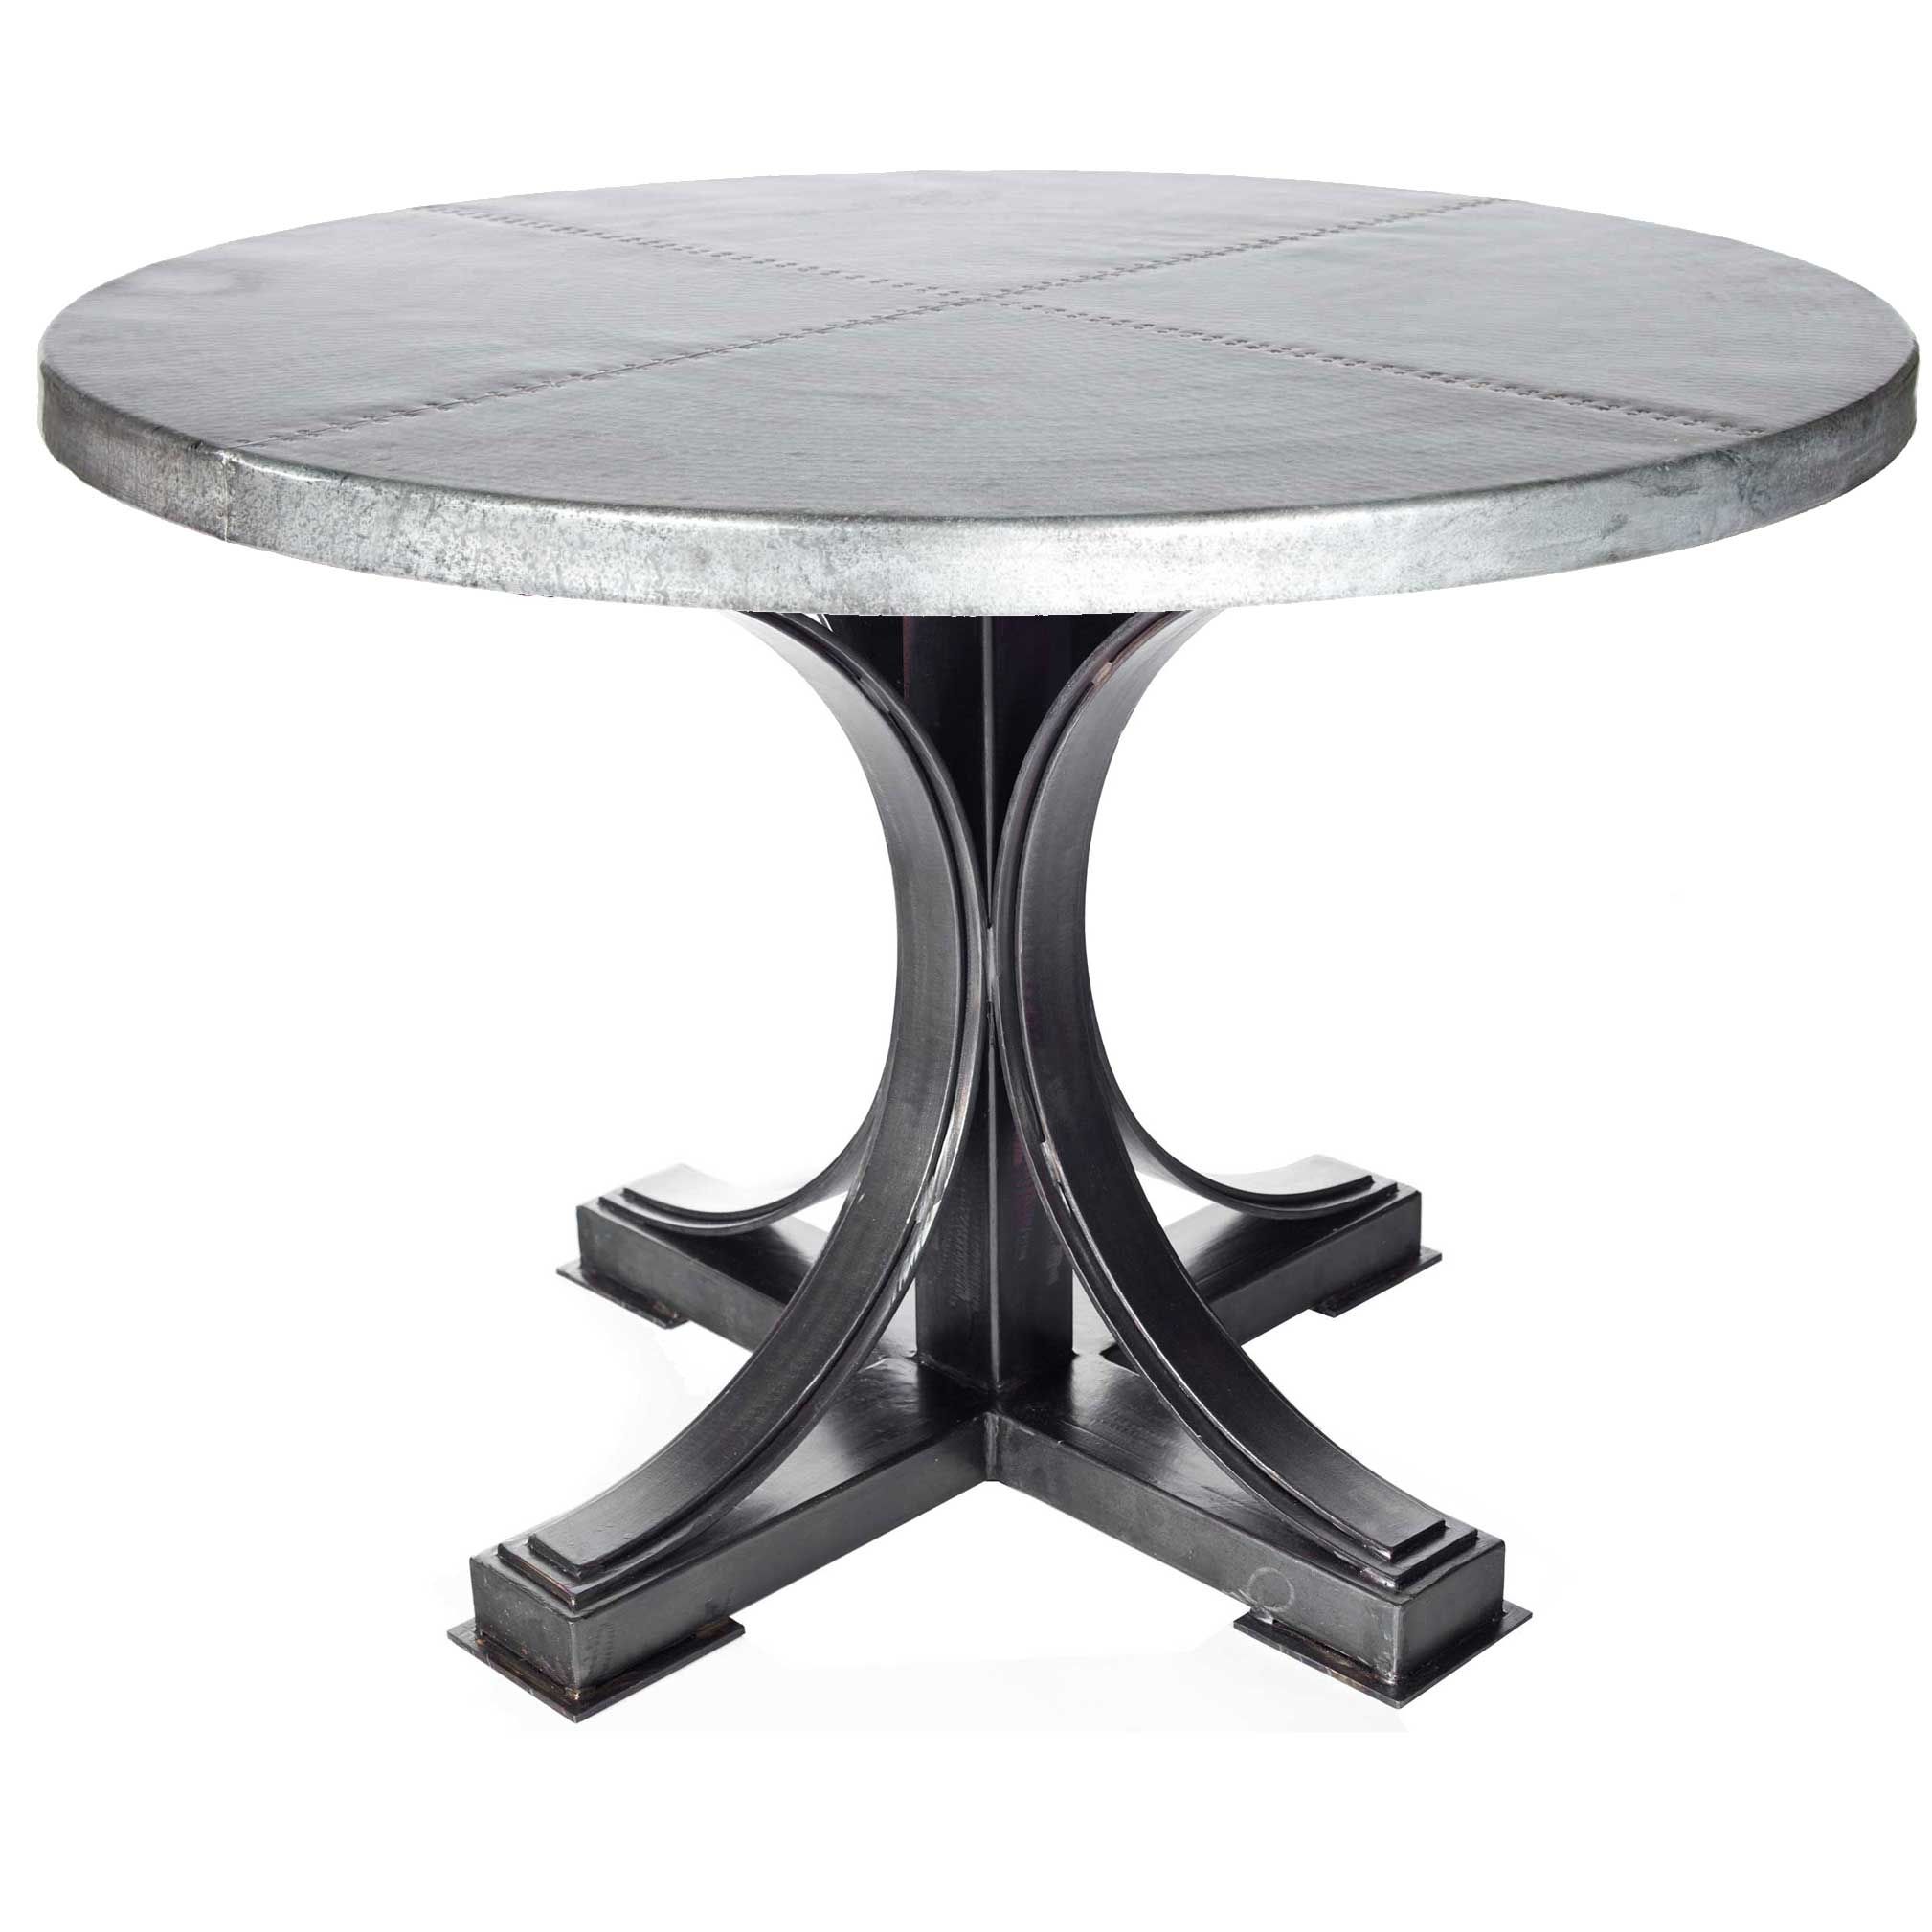 Pictured Here Is The Winston Dining Table With Wrought Iron Base And 60 Round Hammered